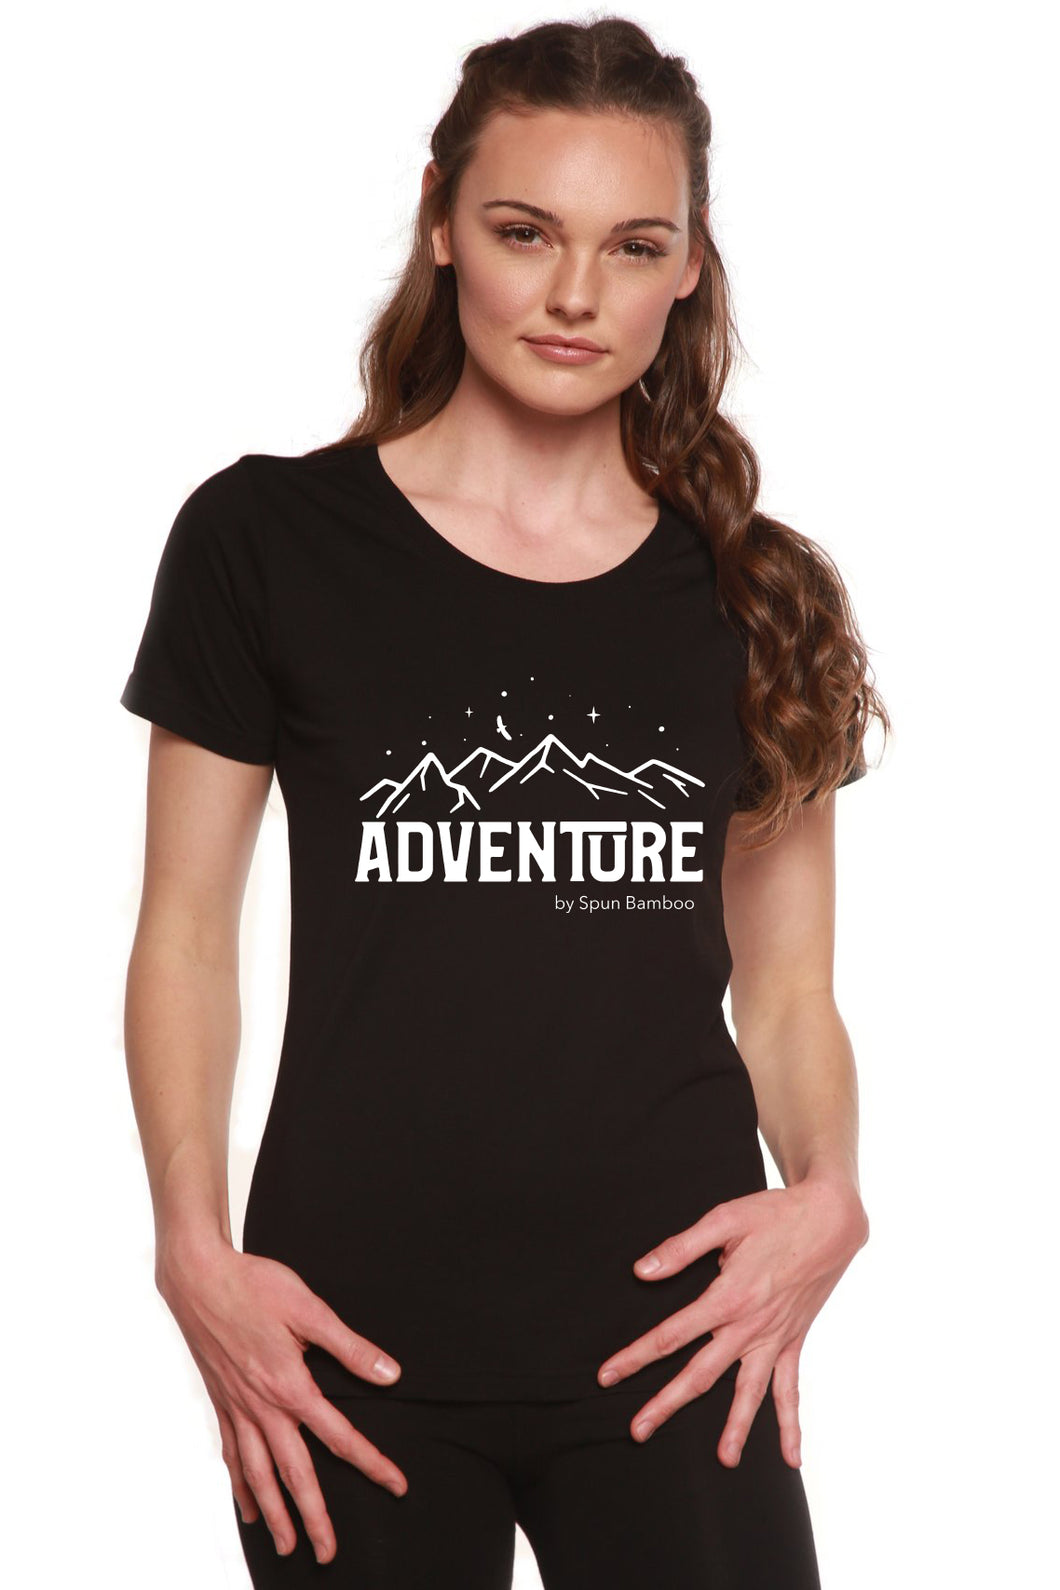 Adventure Printed Women's Bamboo/Cotton Short Sleeve Scoop Neck T-Shirt